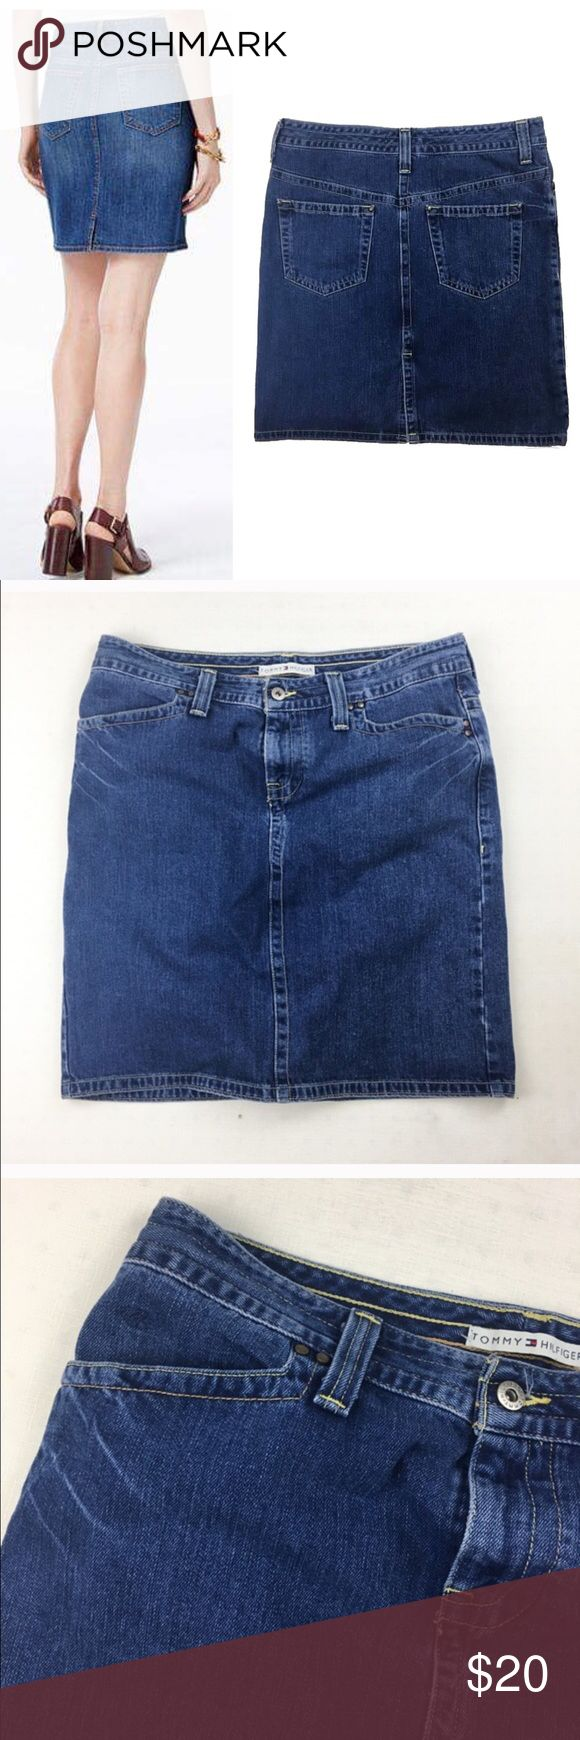 """Tommy Hilfiger's classic denim skirt Tommy Hilfiger's classic denim skirt is weekend-ready. Pair it with feminine top for a breezy ensemble. Excellent condition. Like new. 100% cotton. Waist36"""" length 21"""".  Zipper and button closure; belt loops Classic five-pocket styling Allover medium wash Slit at center back Hits at thigh Cotton/Lycra® spandex Machine washable Imported Tommy Hilfiger Skirts"""